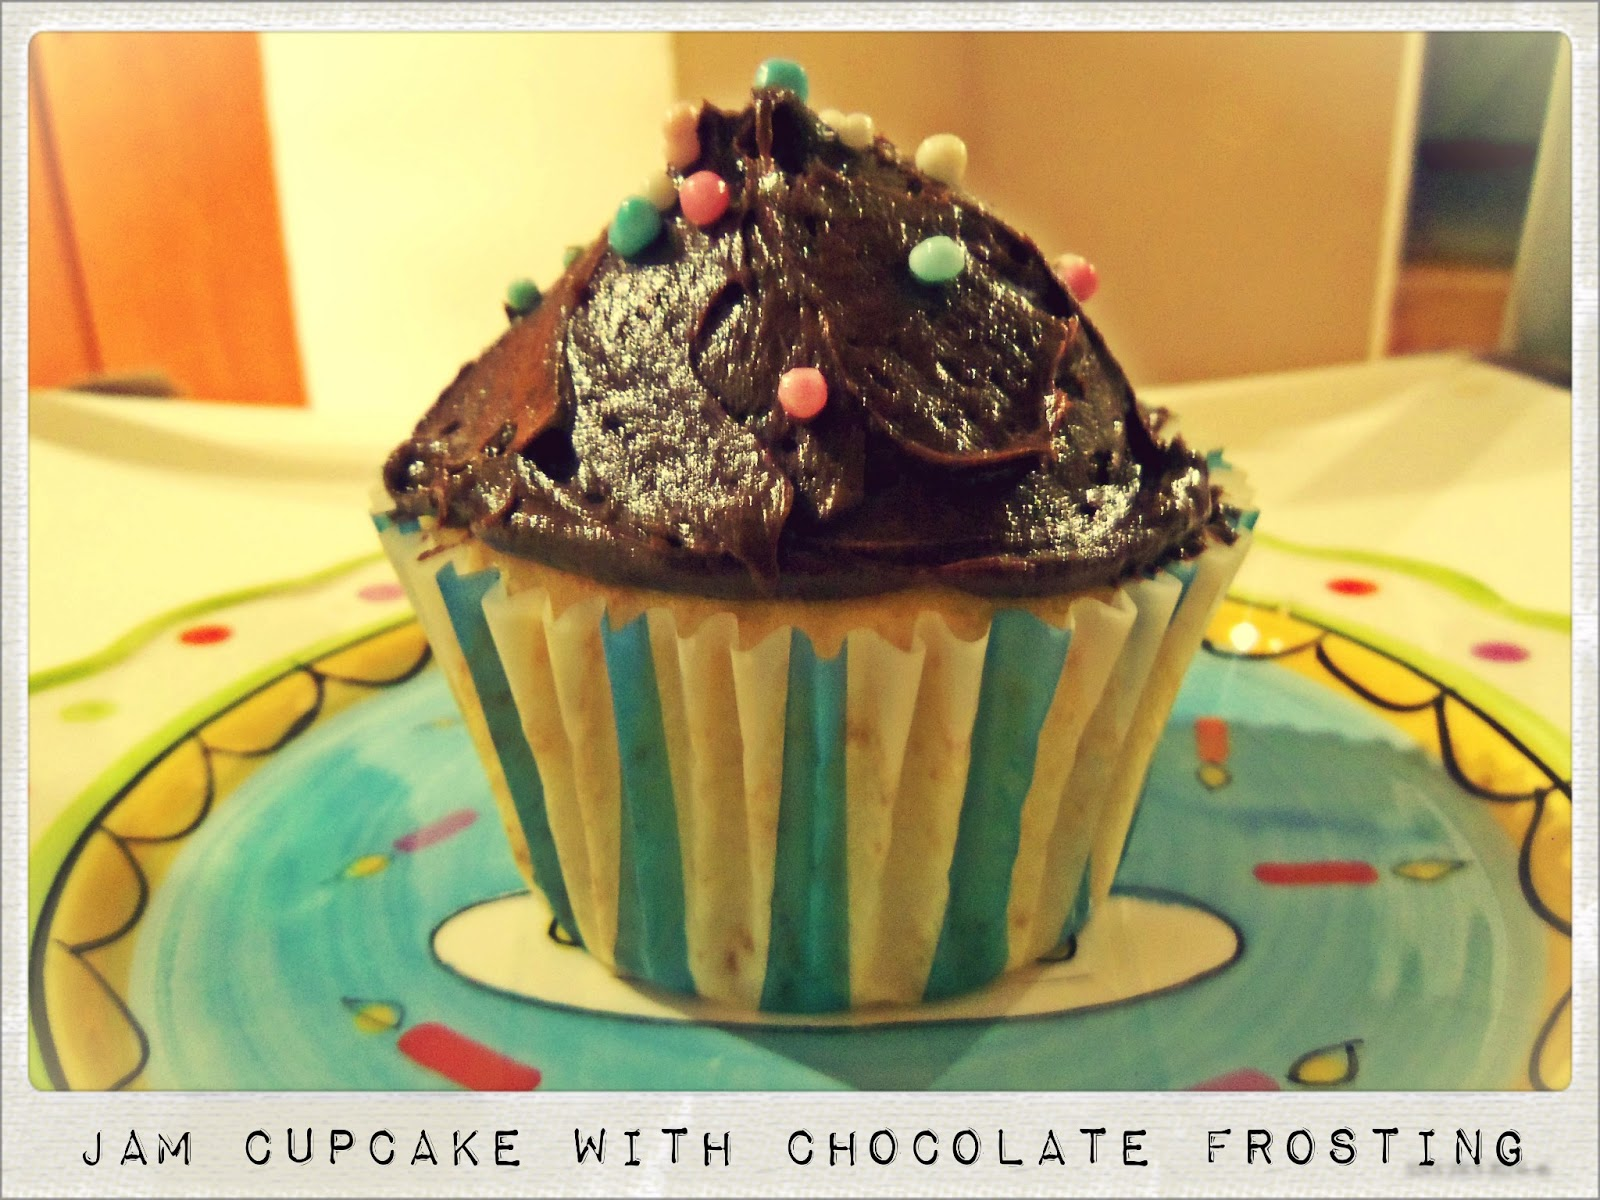 You've Got Meal!: Jam Cupcakes with Chocolate Frosting